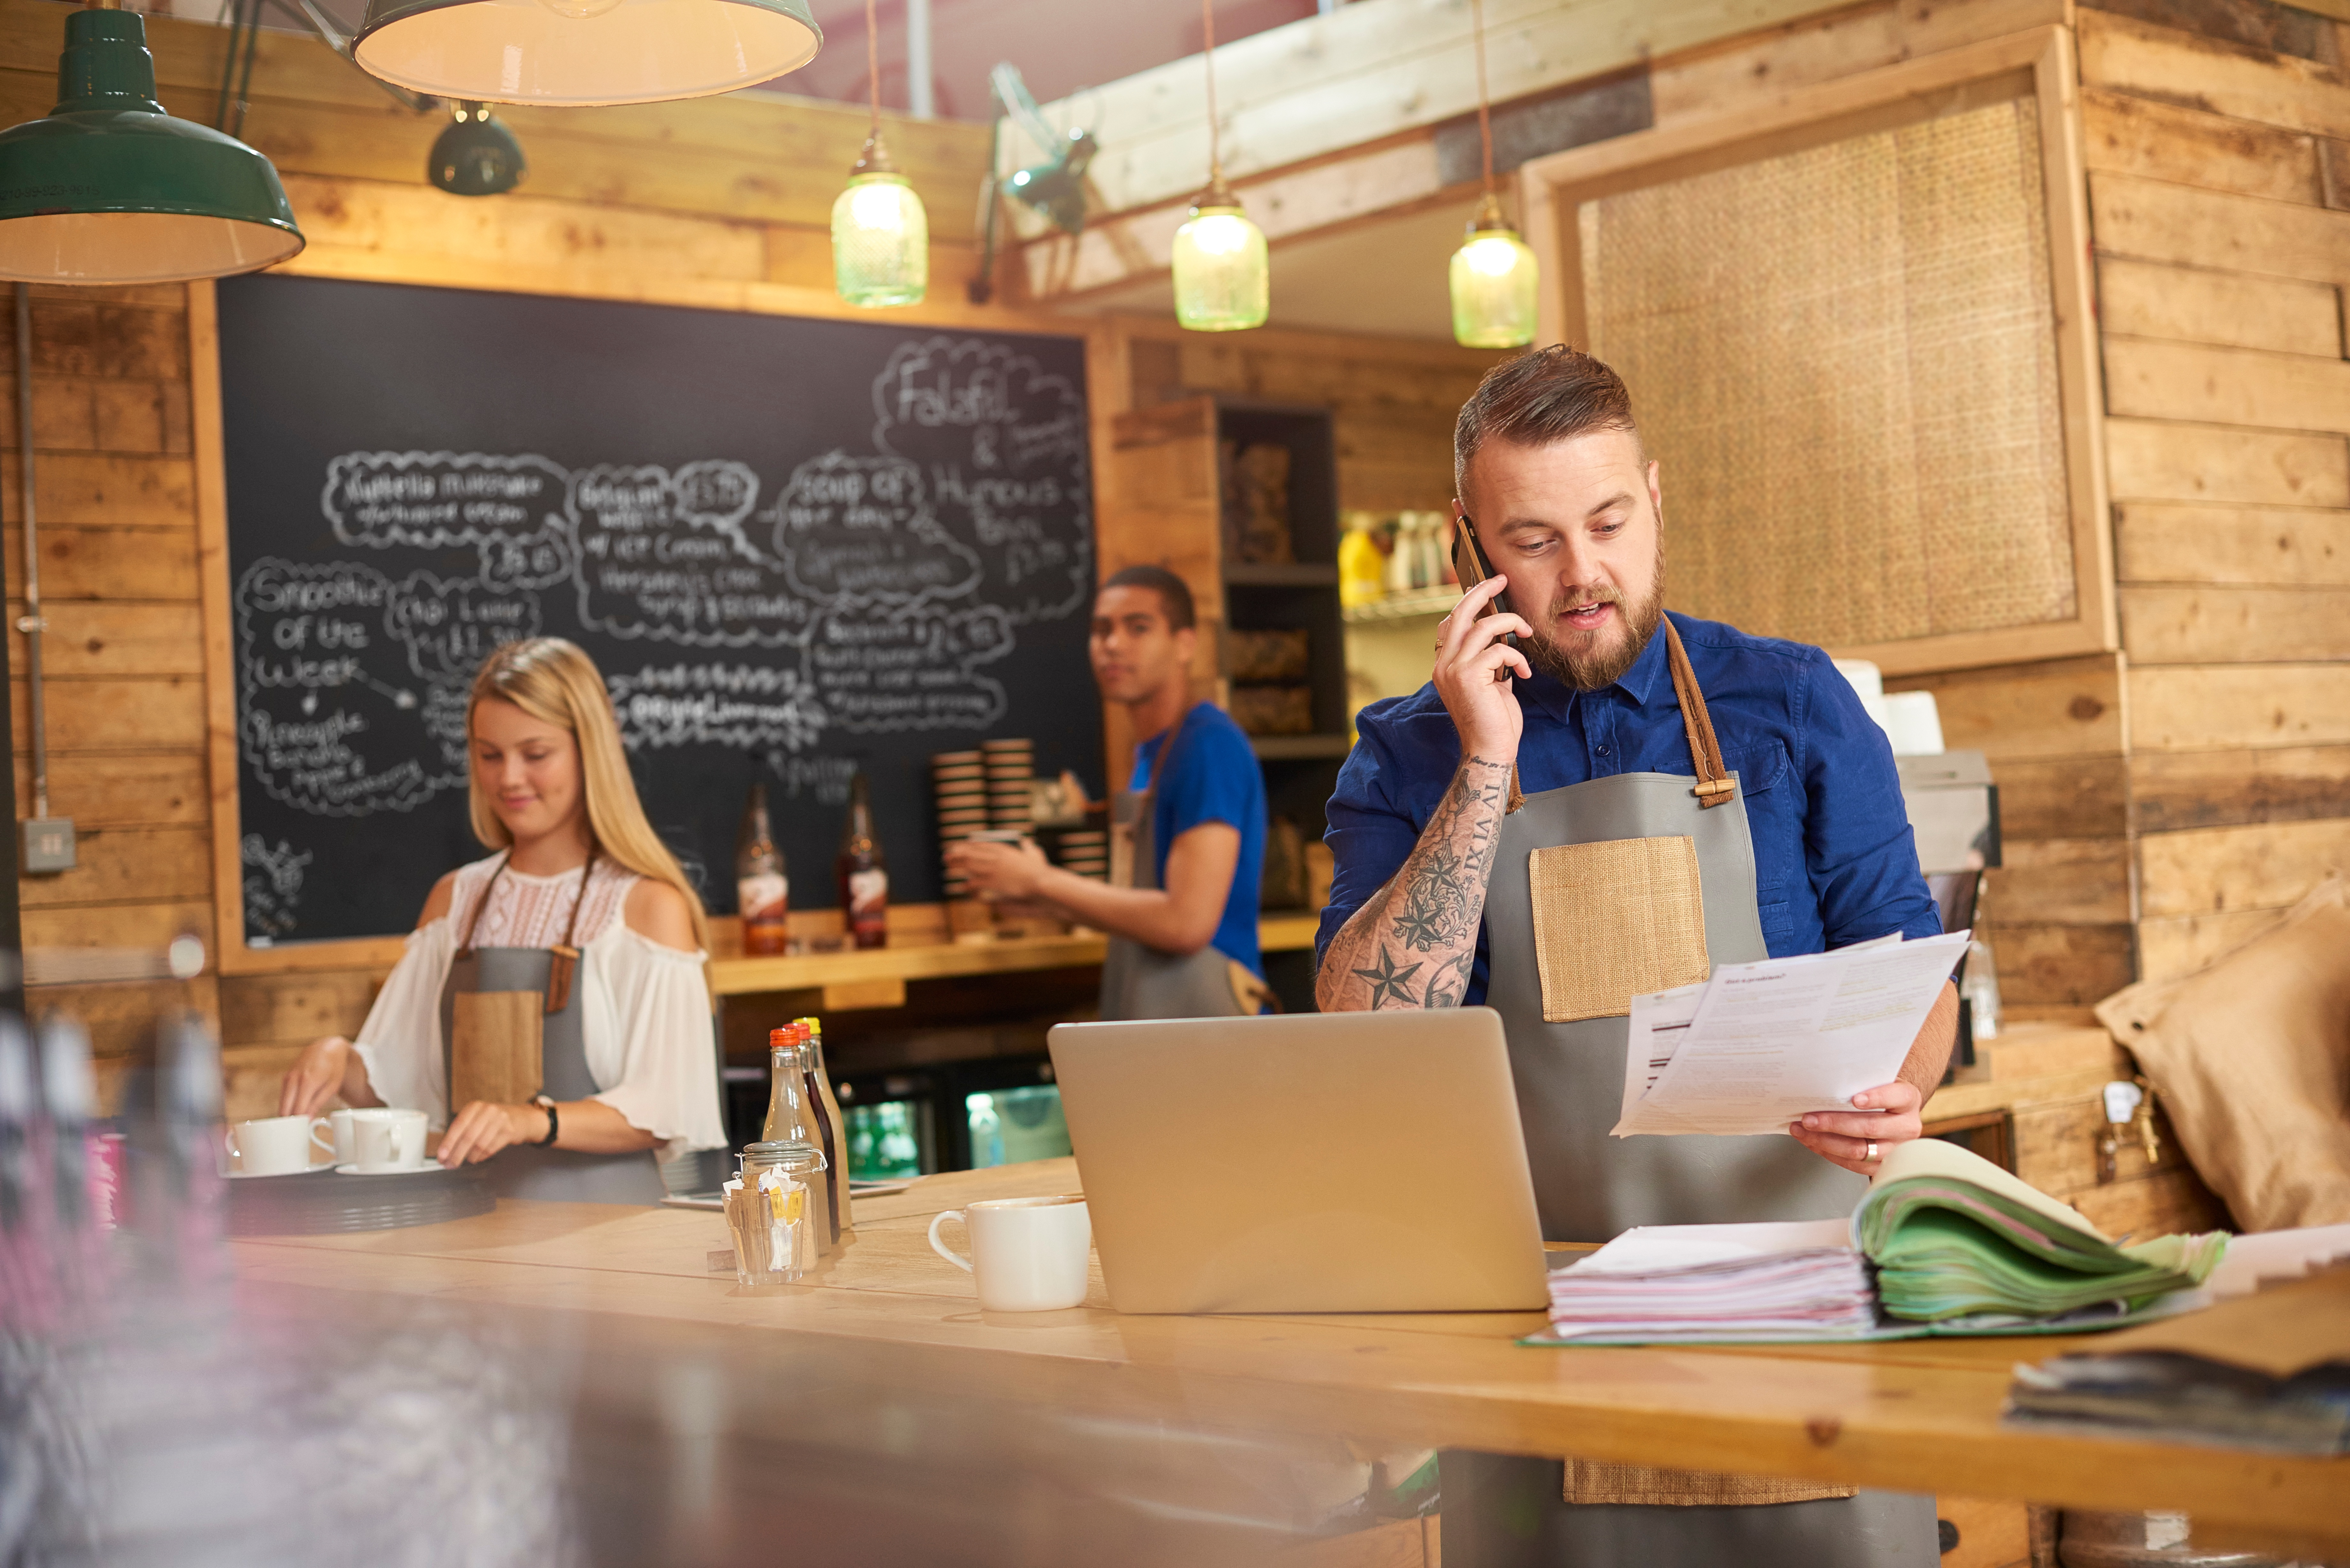 Coffee-shop-owner-phoning-accountant-597272594_7360x4912